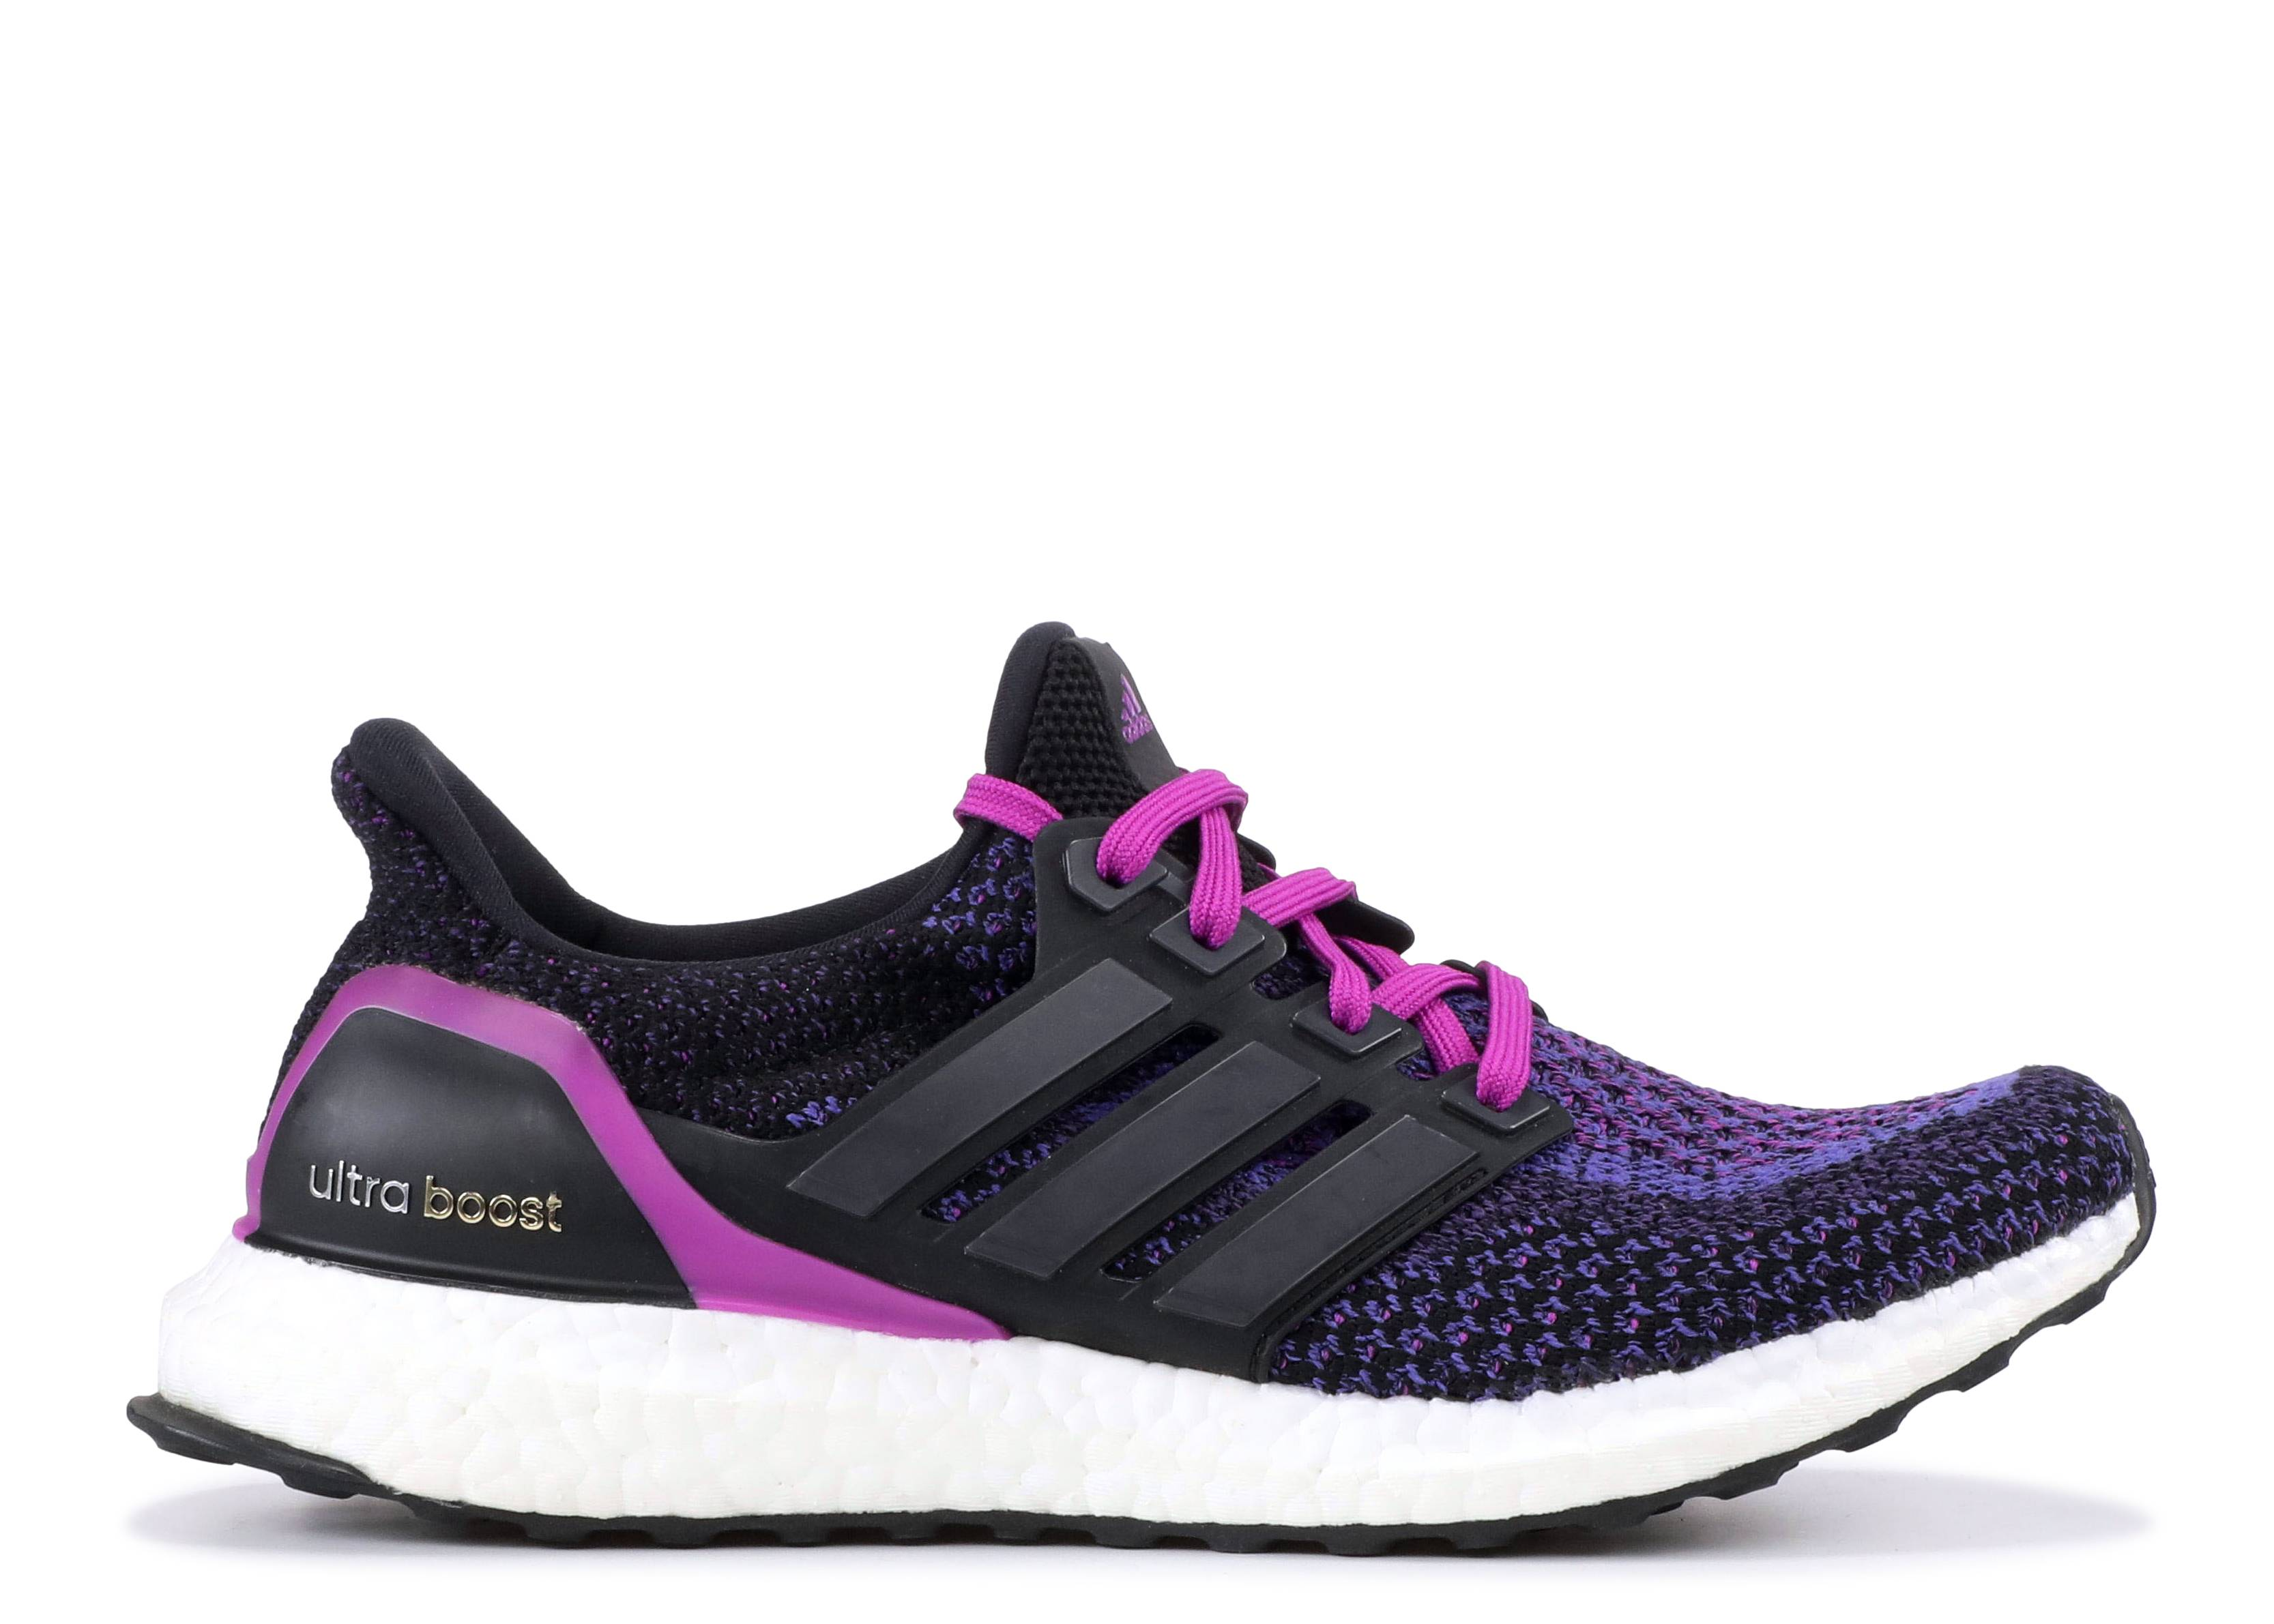 reputable site b0563 2e03a adidas boost 2.0